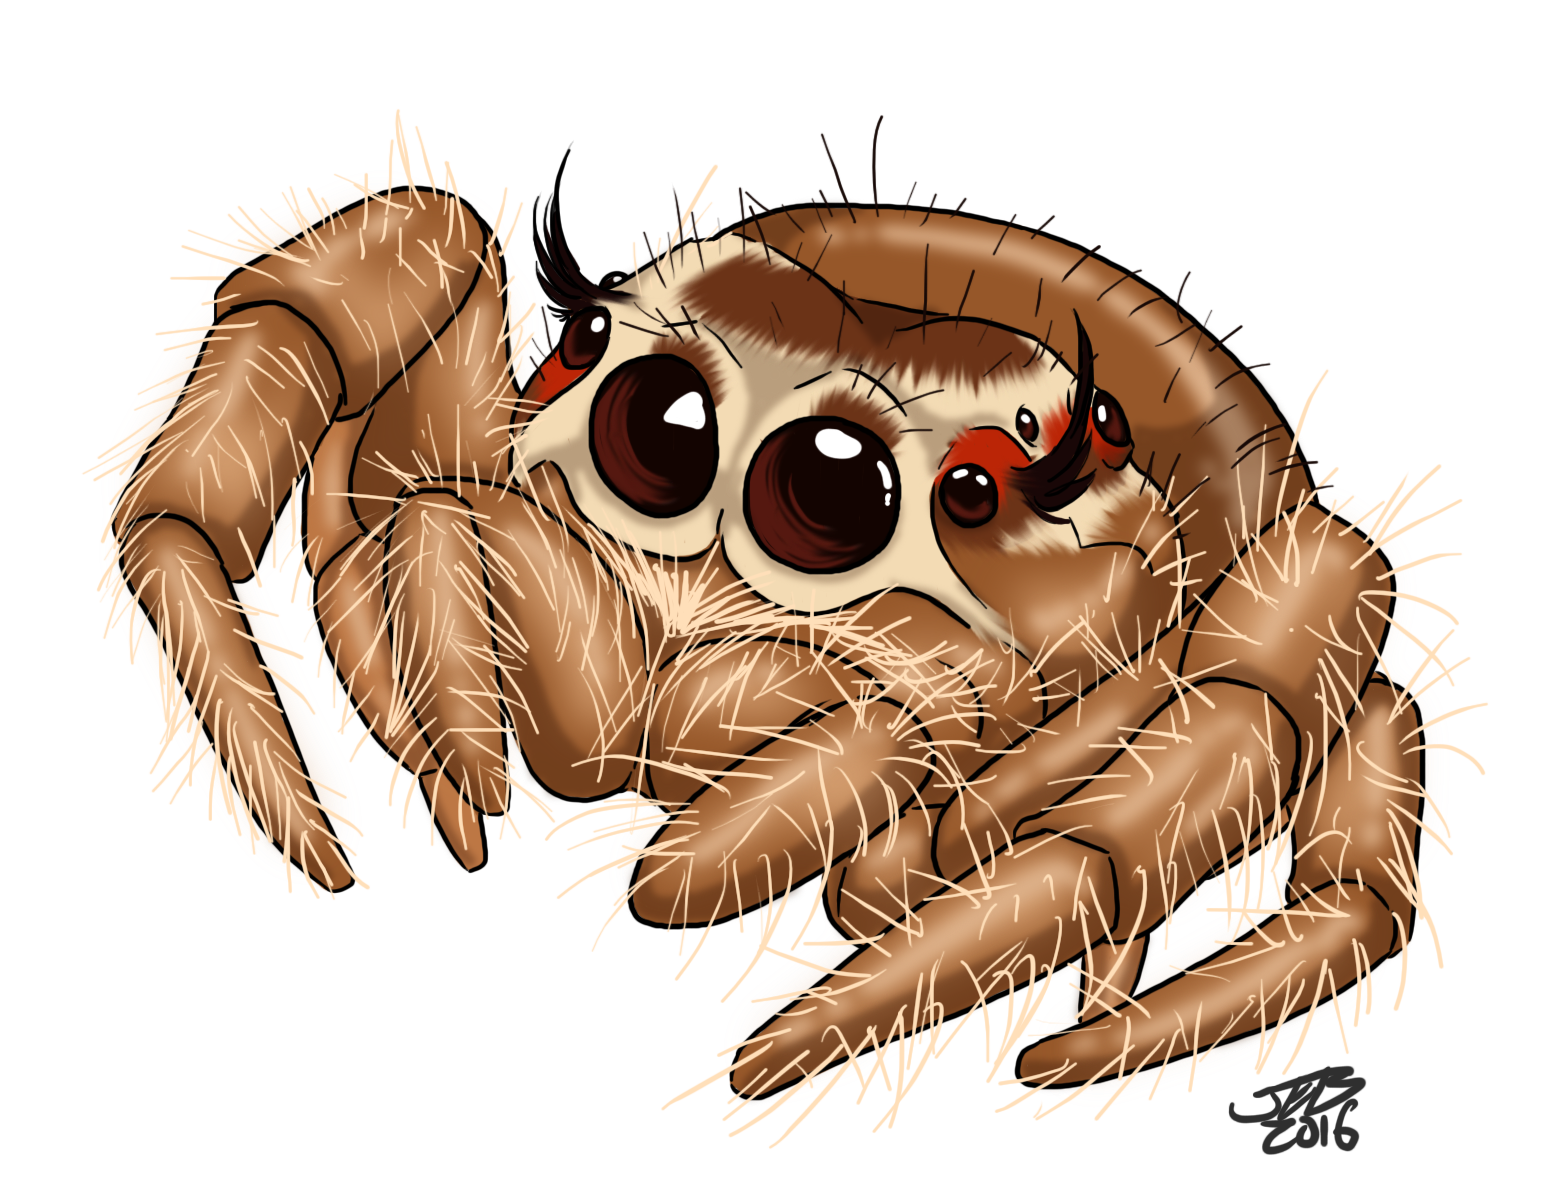 Frogs drawing neo traditional. Cute jumping spider by